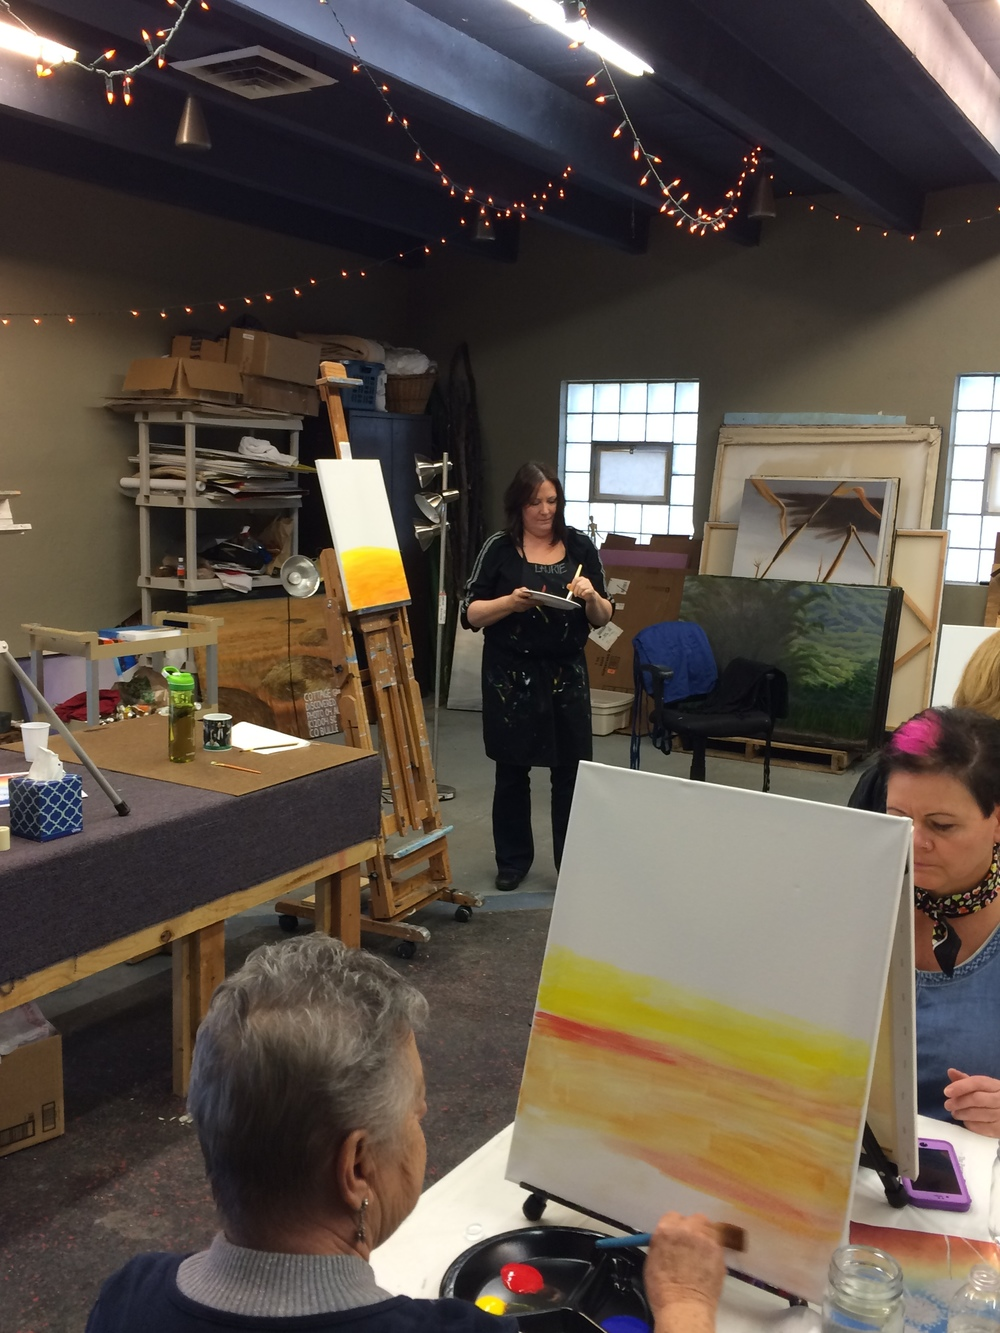 Paint Nite and DIY Art at The Tornado Factory